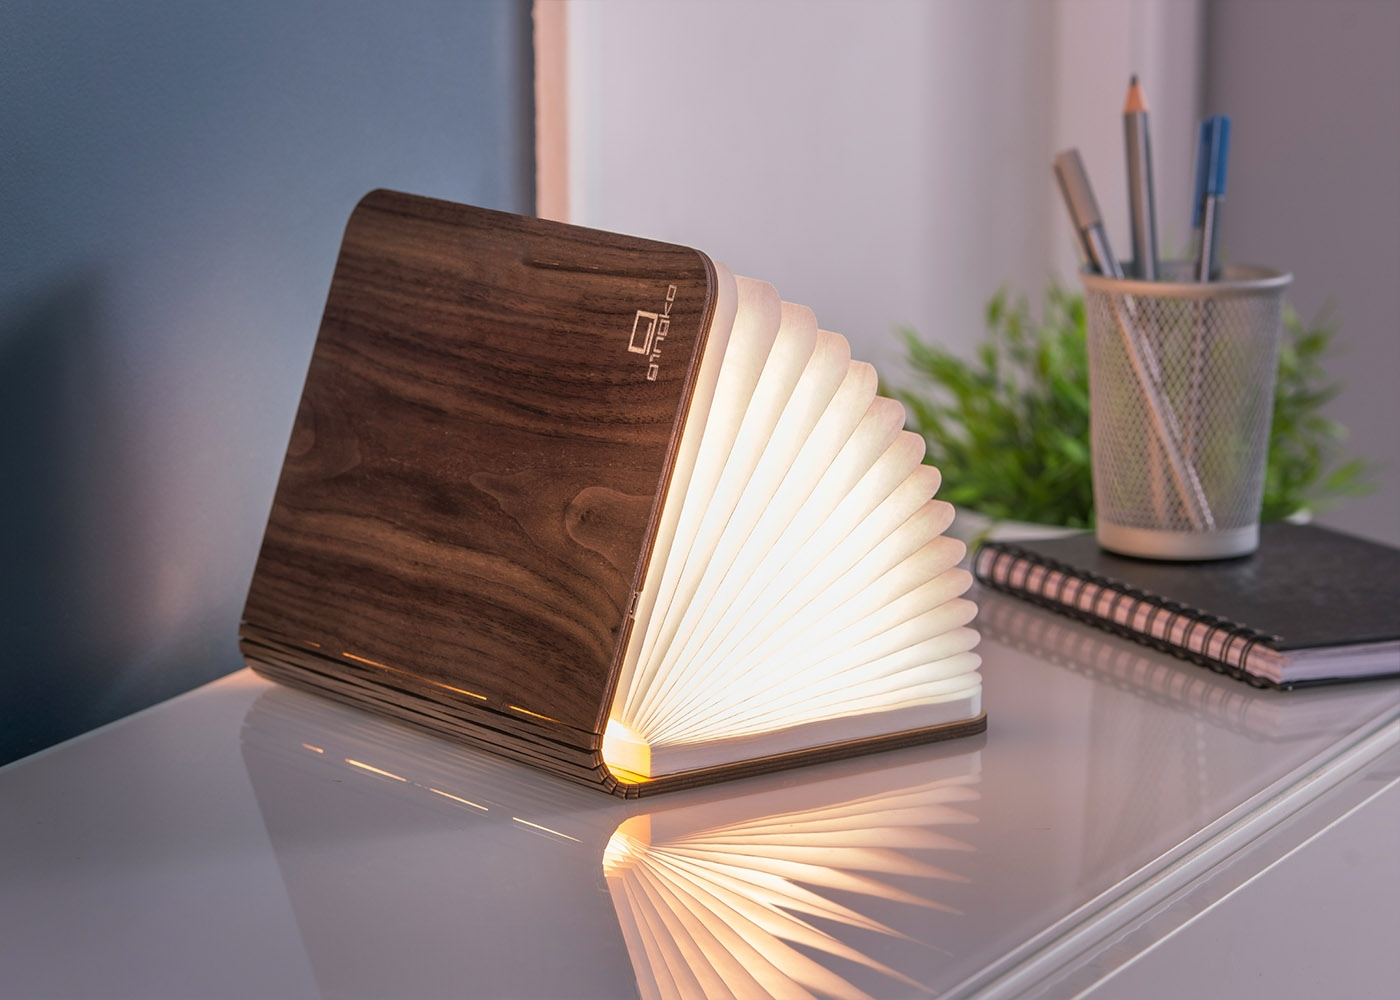 Lampe en forme de livre design book light par Gingko